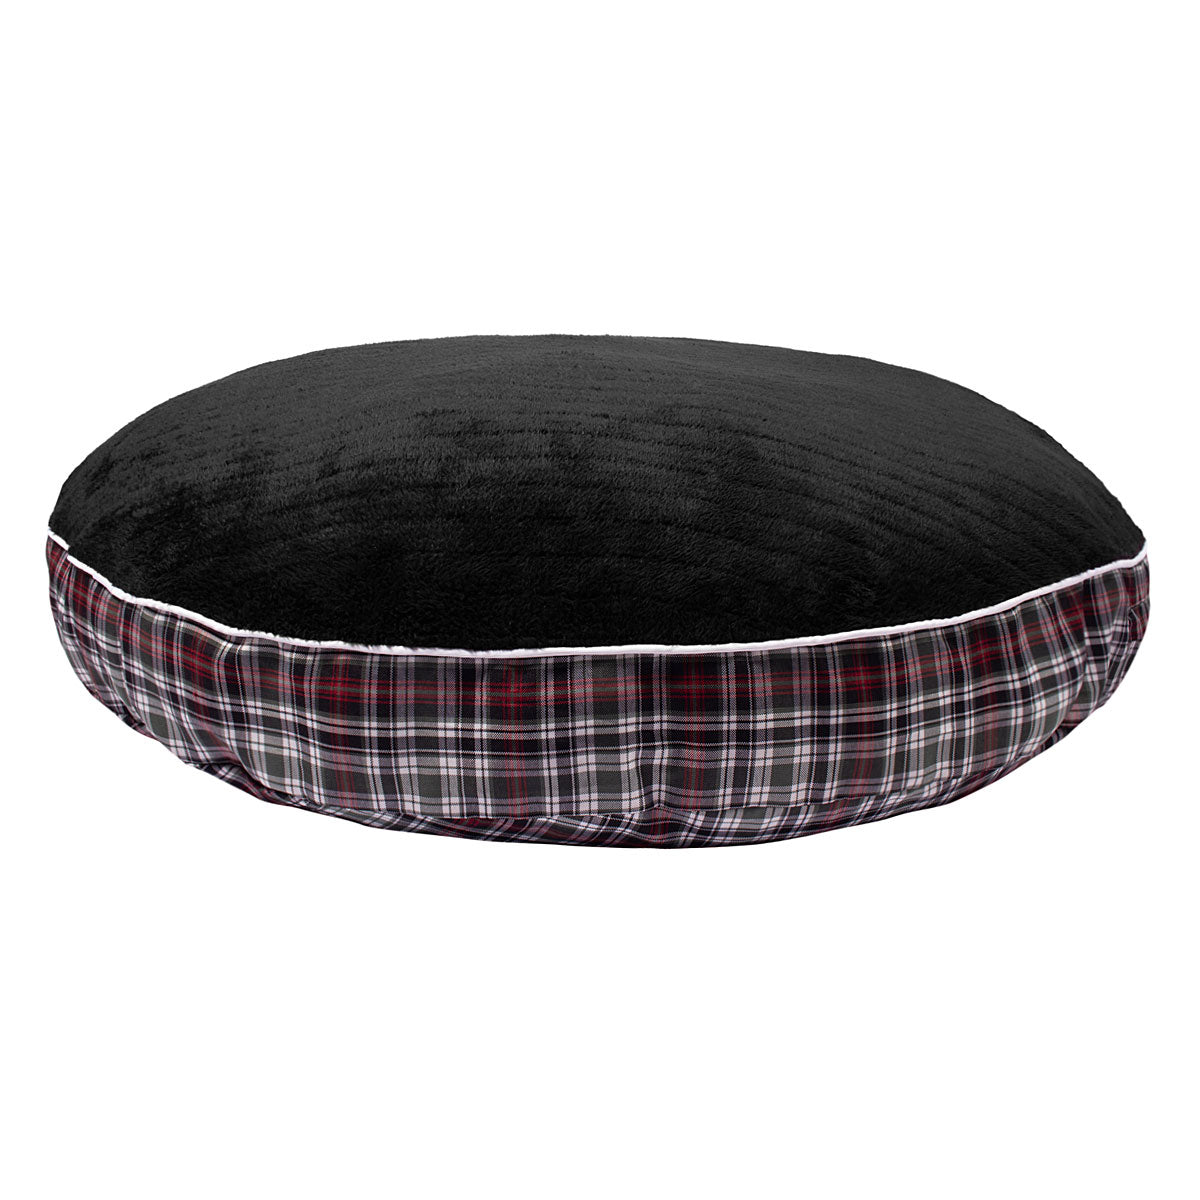 Halo Duck Green Plaid Round Dog Bed_2846